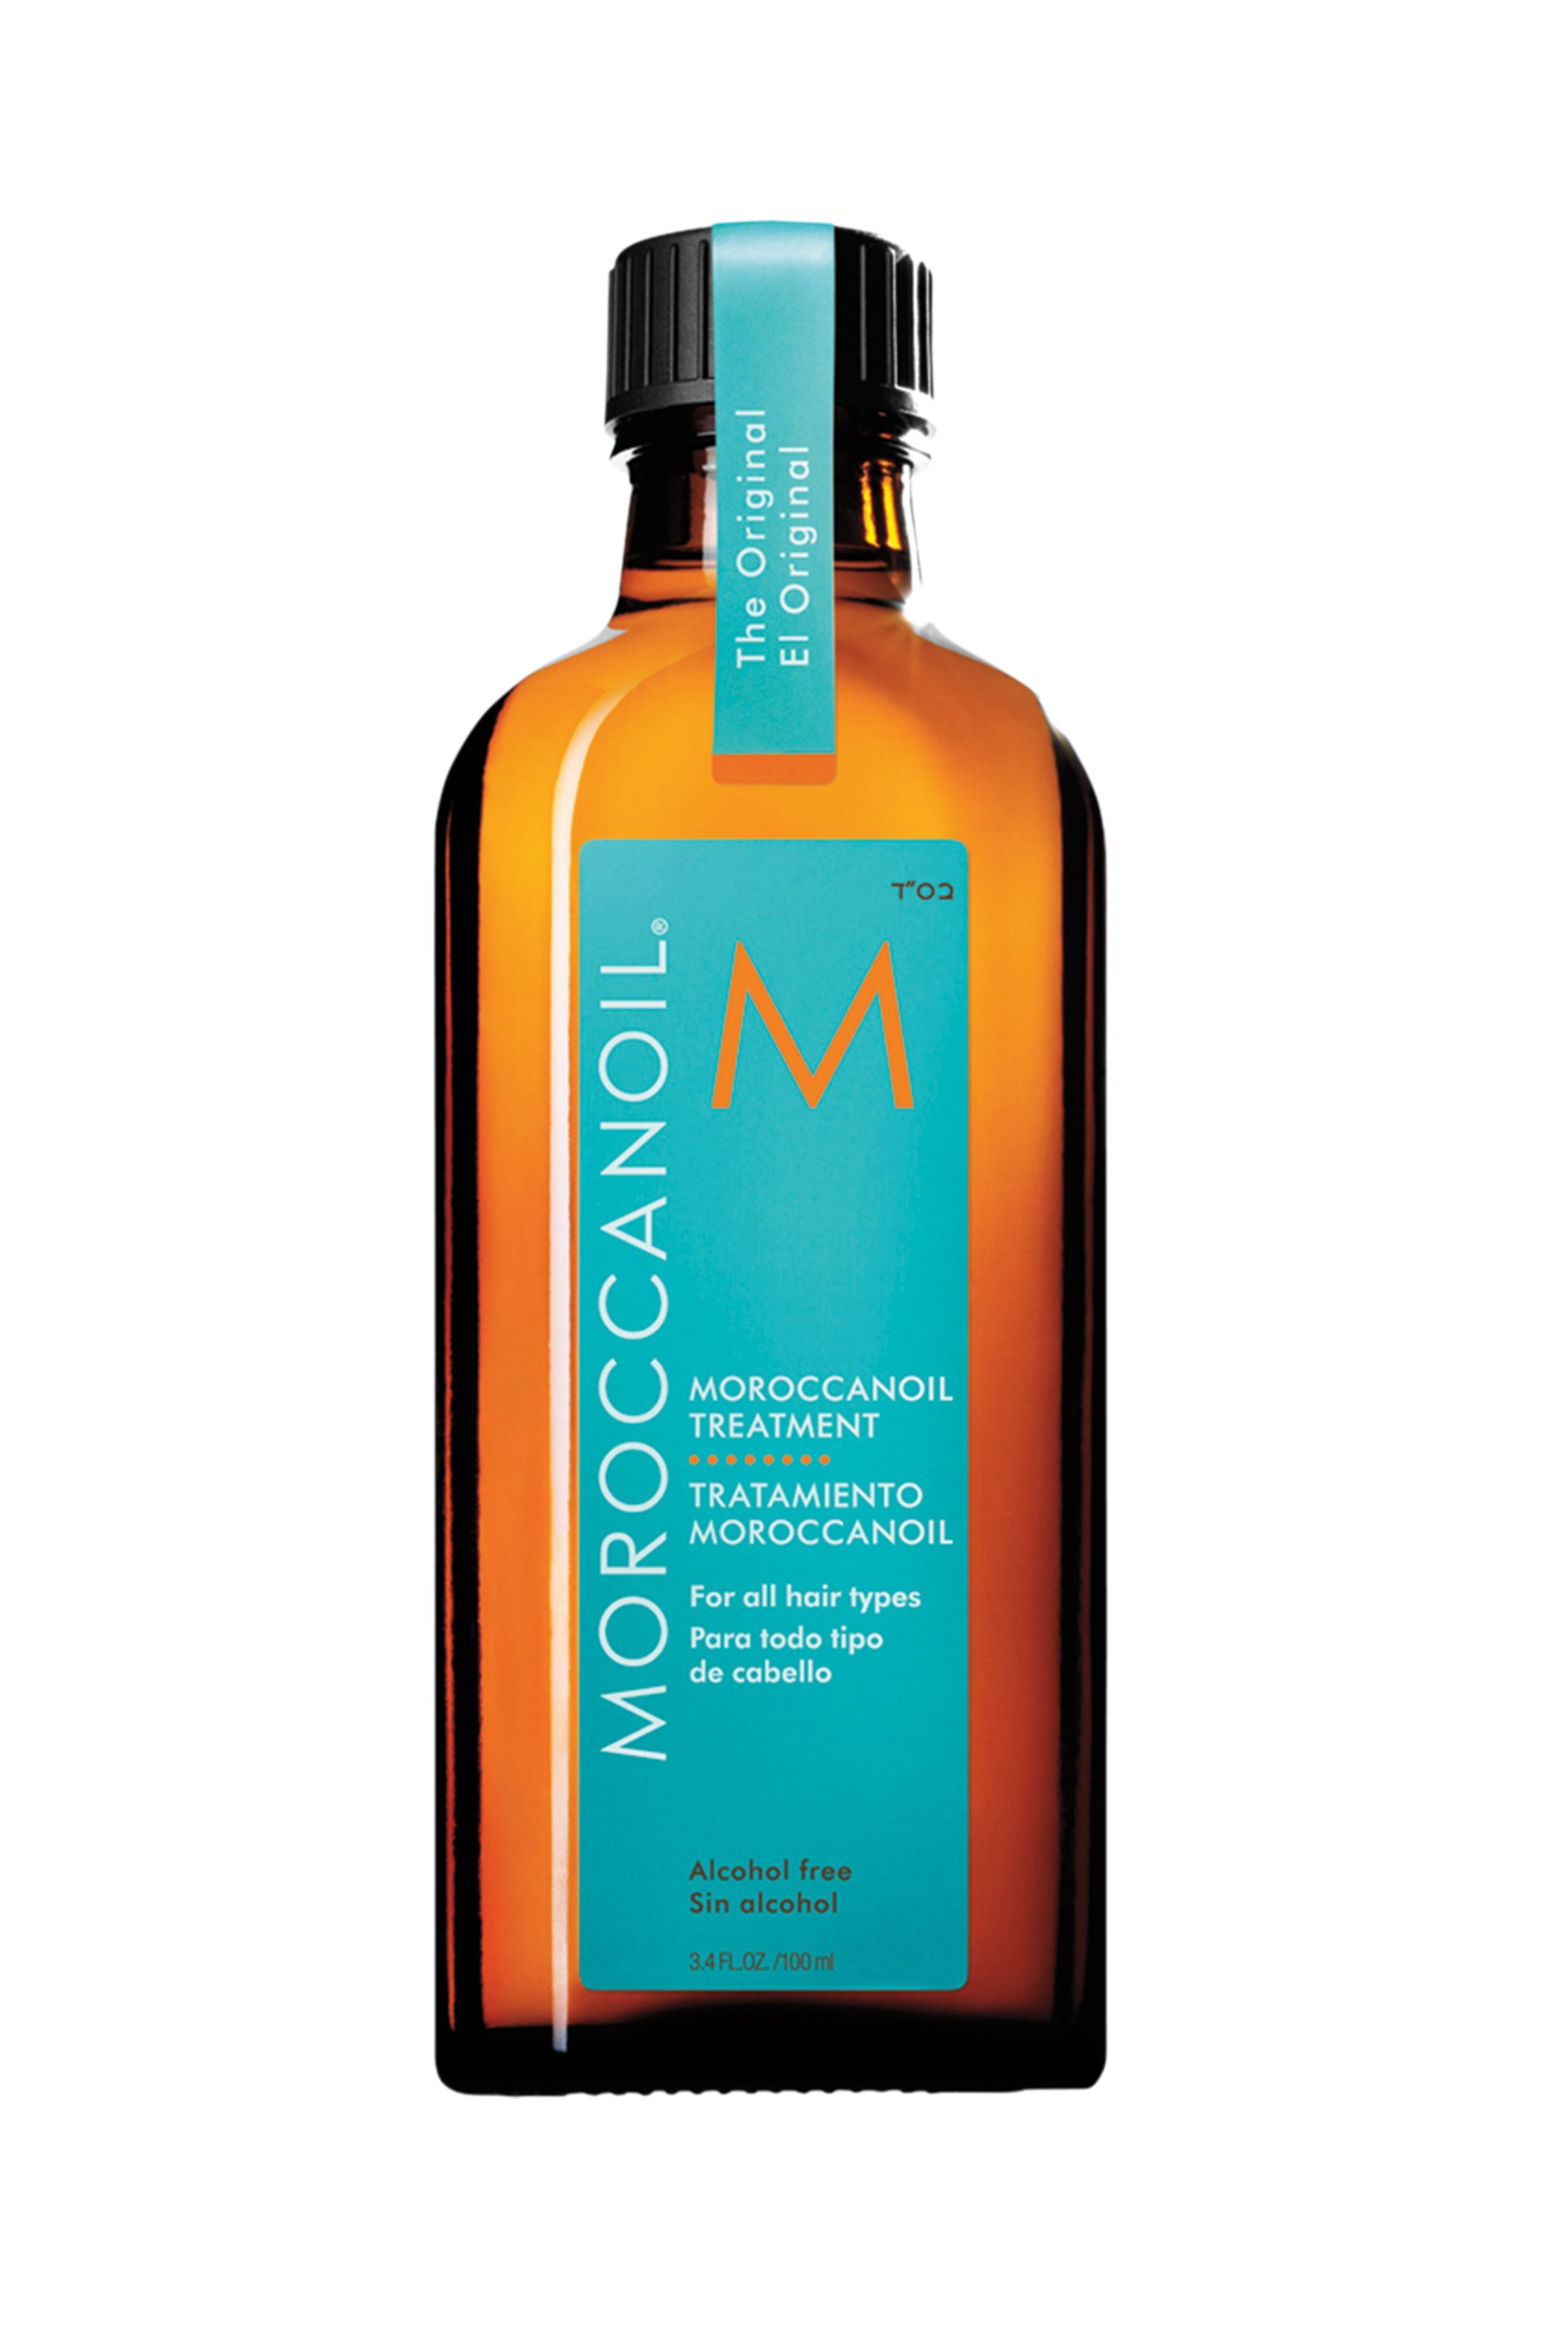 "<p><strong>Recommended by New York City's NYC Ricky's</strong><strong>: </strong>Frenetic New Yorkers crave the instant shine-boosting, softening powers of argan oil.</p><p><br></p><p><em>$44, <a href=""http://www.moroccanoil.com/us_en/hair-care-moroccanoil-treatment-original-100-ml-us"">moroccanoil.com</a></em><em></em><br></p>"